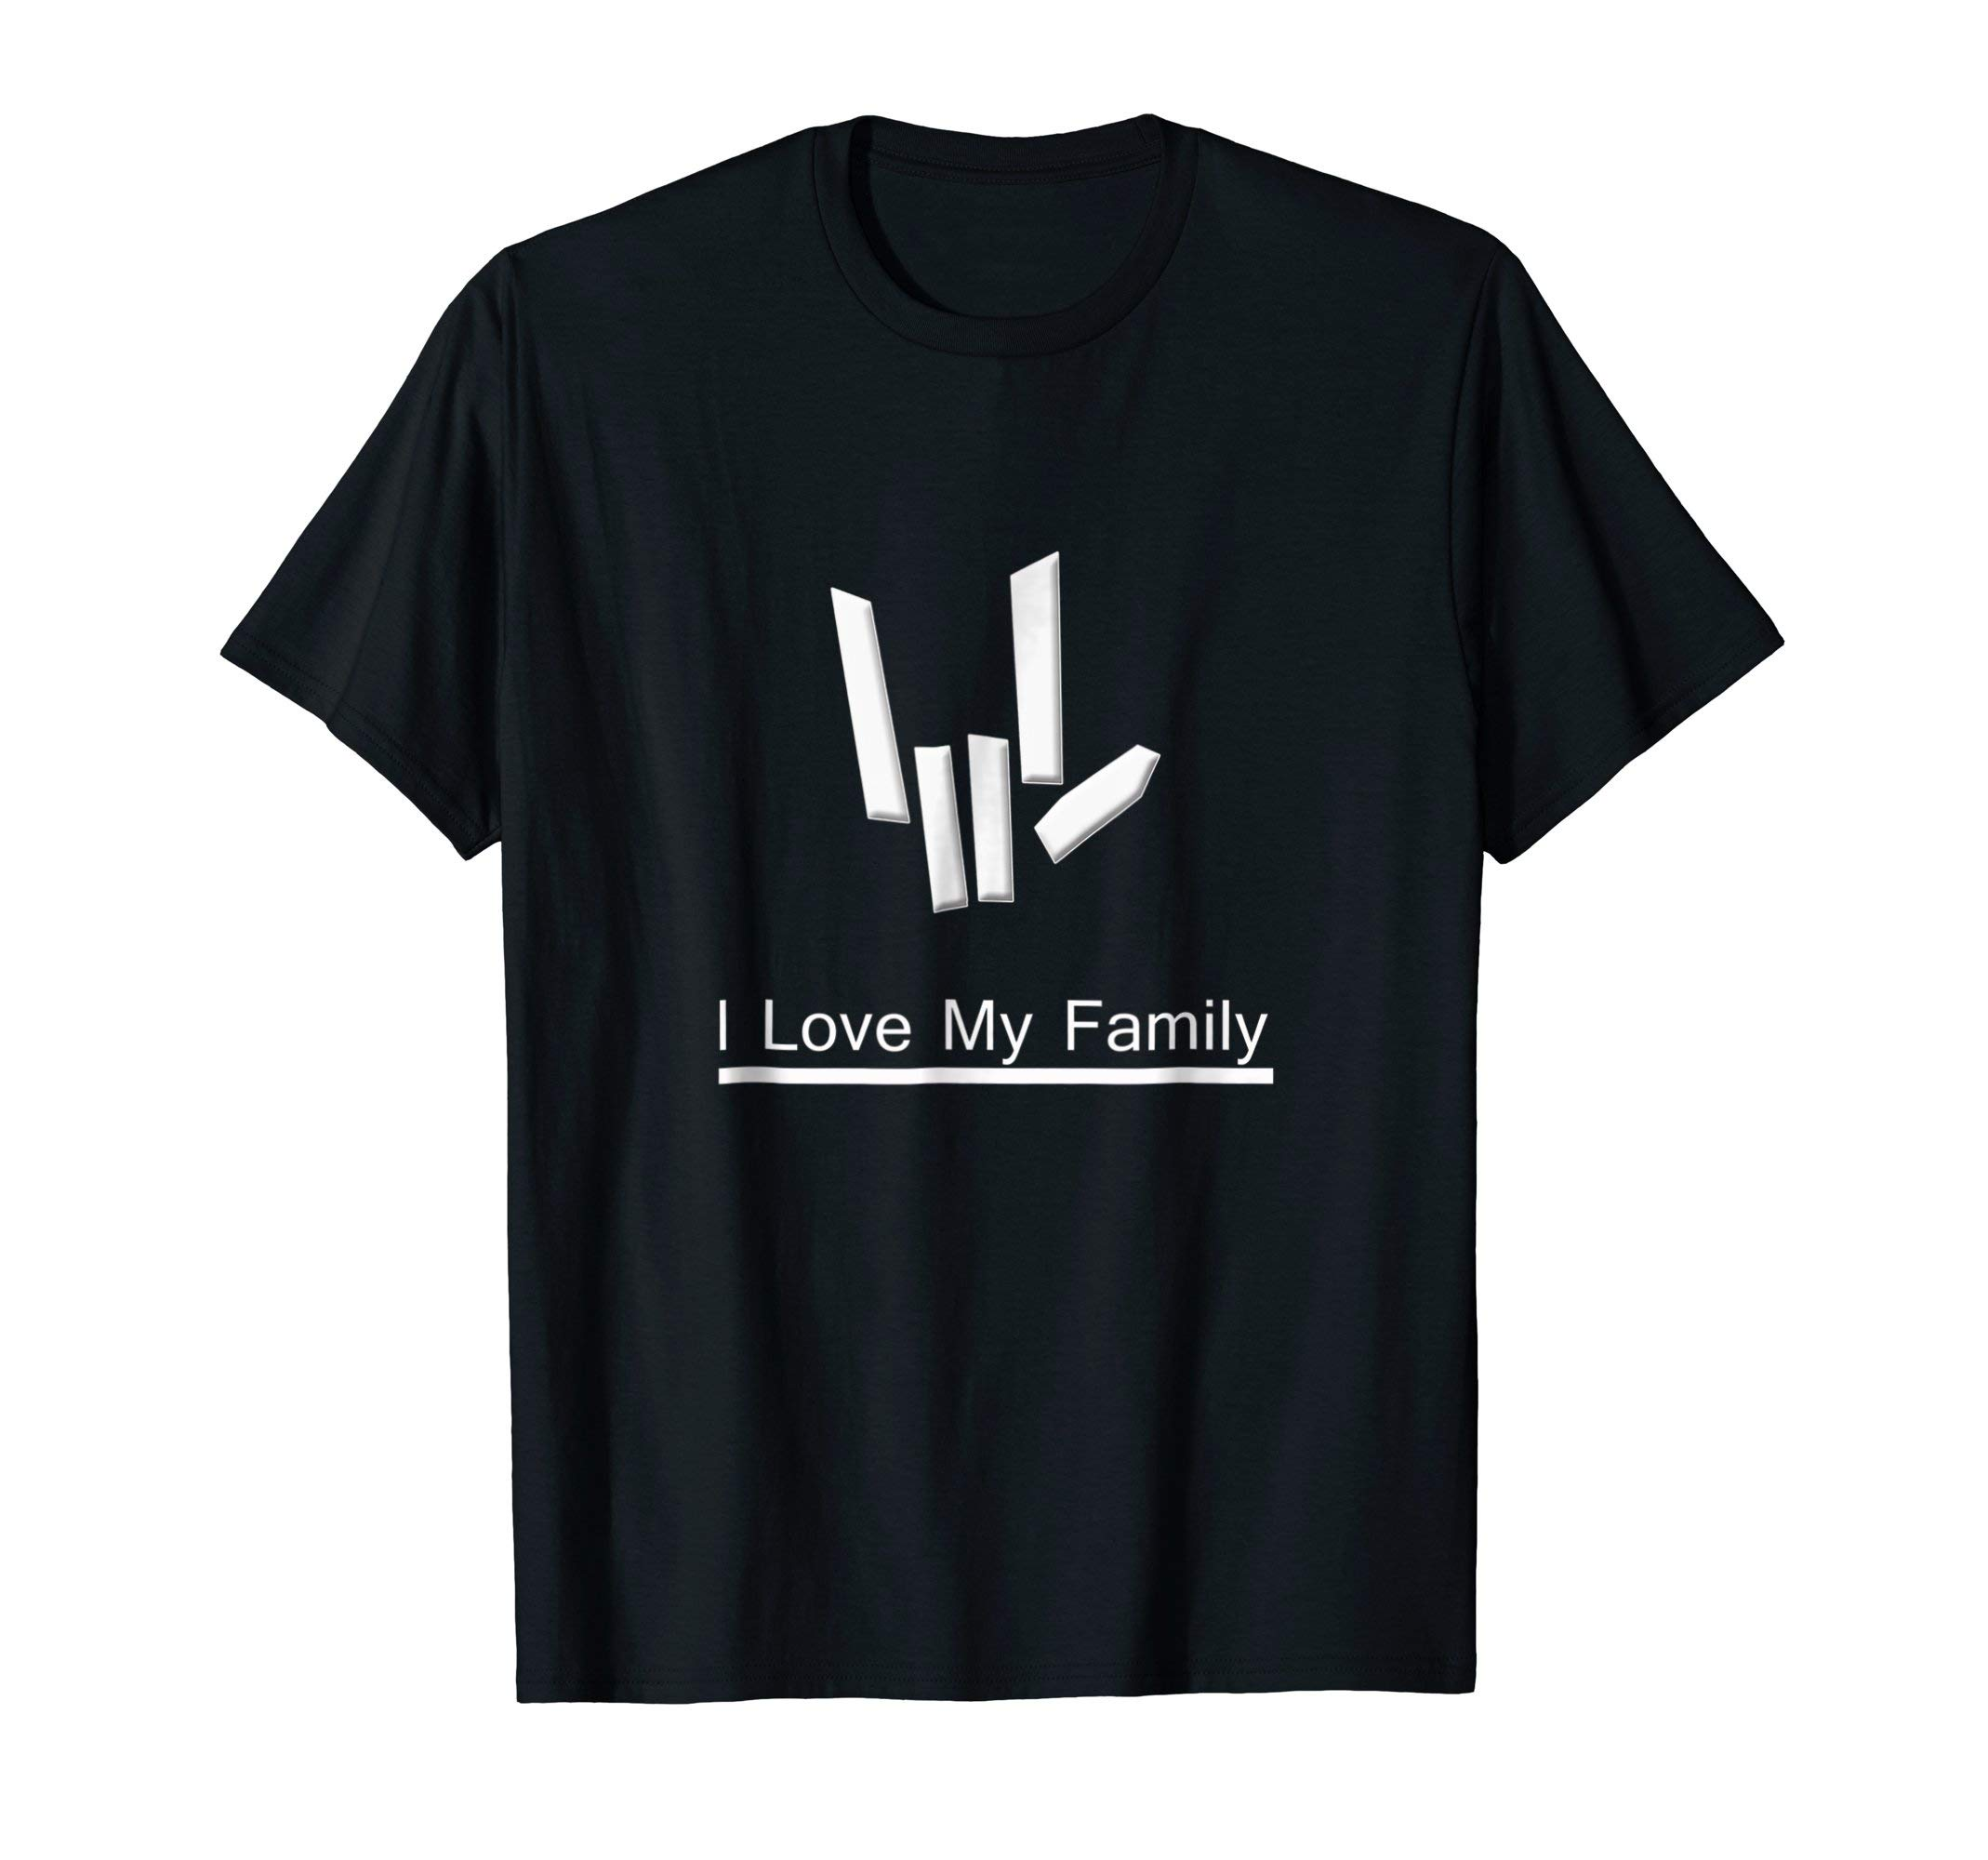 I LOVE MY FAMILY T-SHIRT FOR MAN WOMAN AND KIDS by SHARE THE LOVE (Image #1)